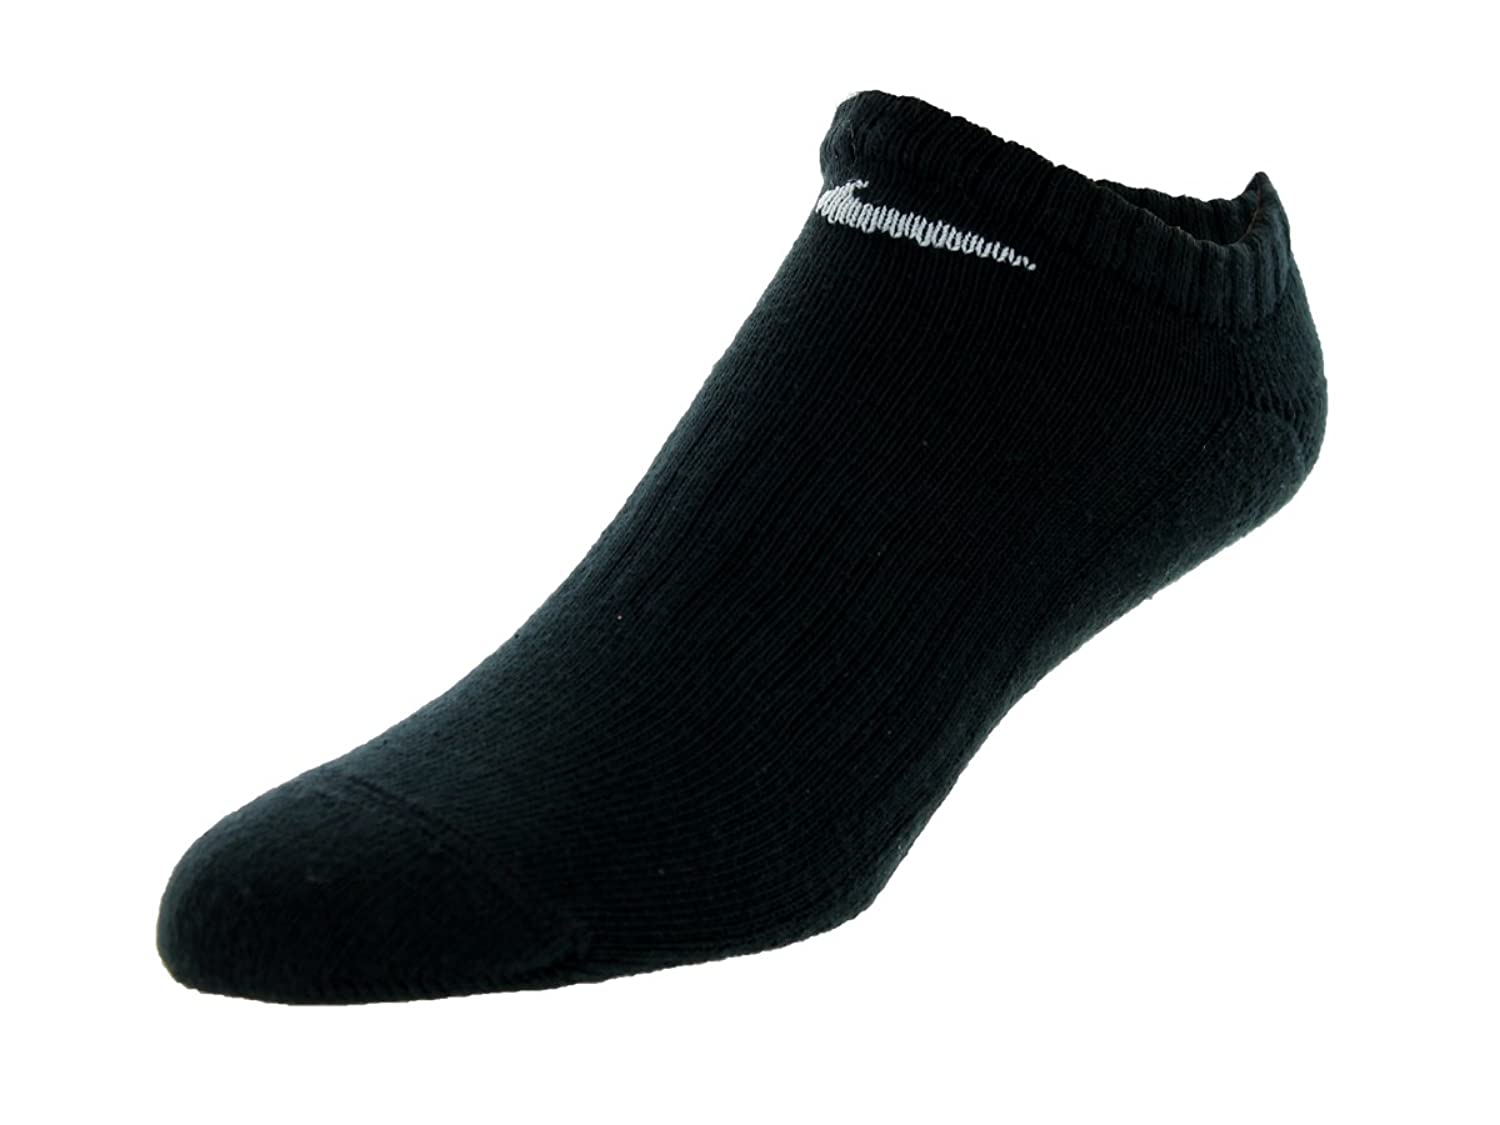 Nike Unisex Cotton No Show Socks Image 1